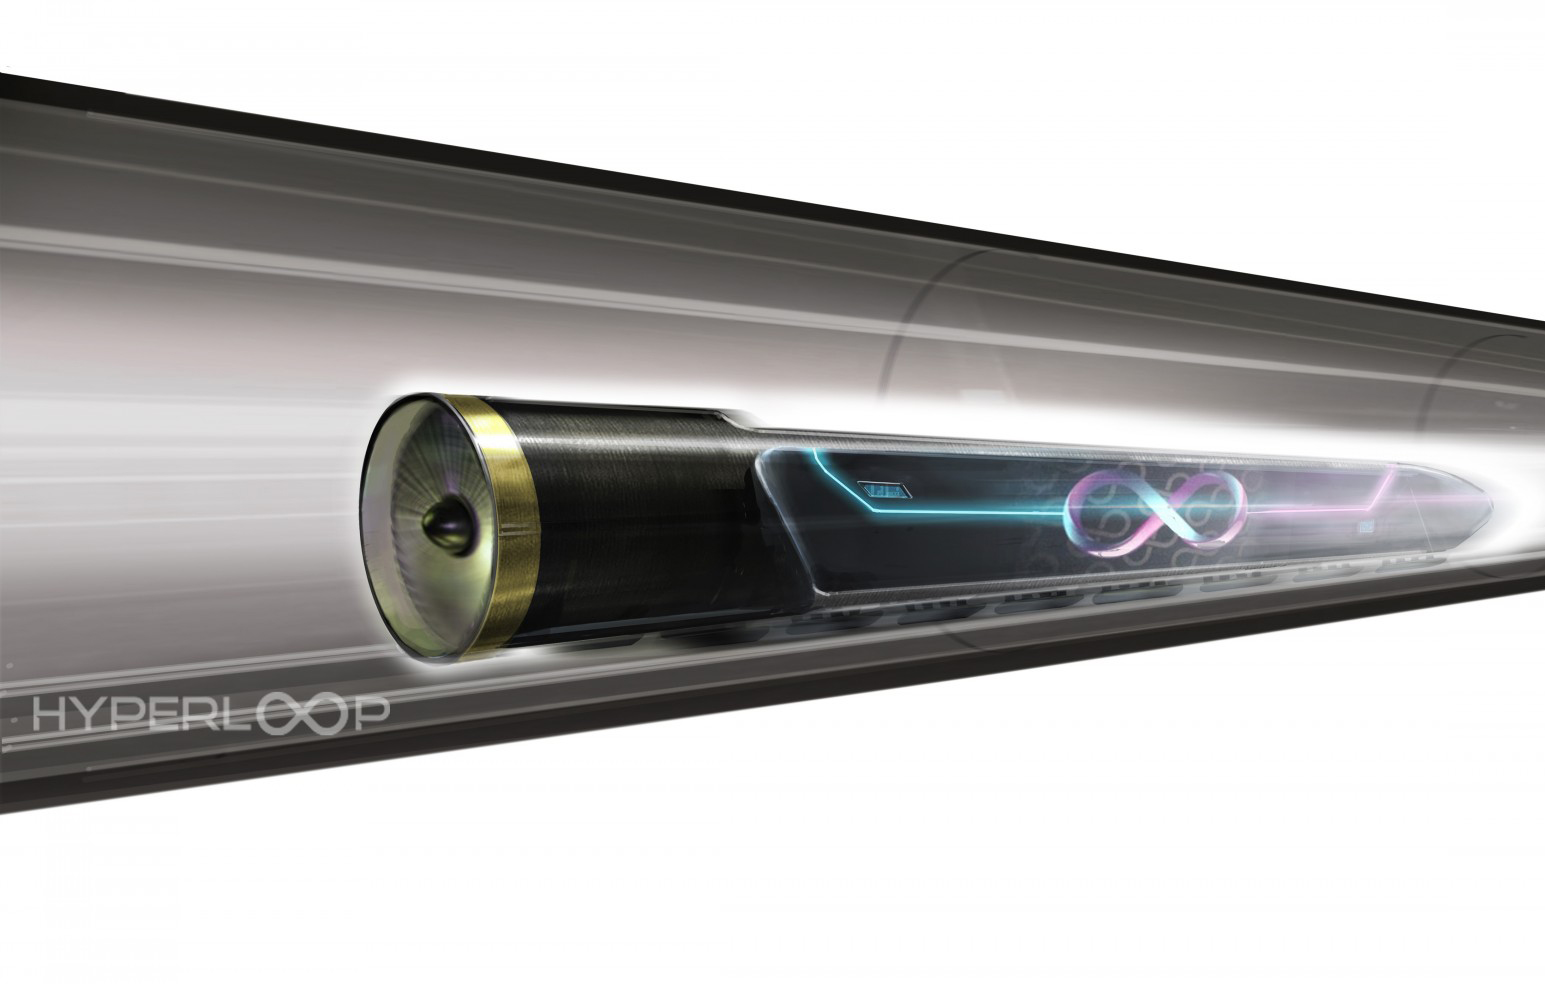 Photo of 150 mile in 12 minutes: The first Hyperloop project wants to get started